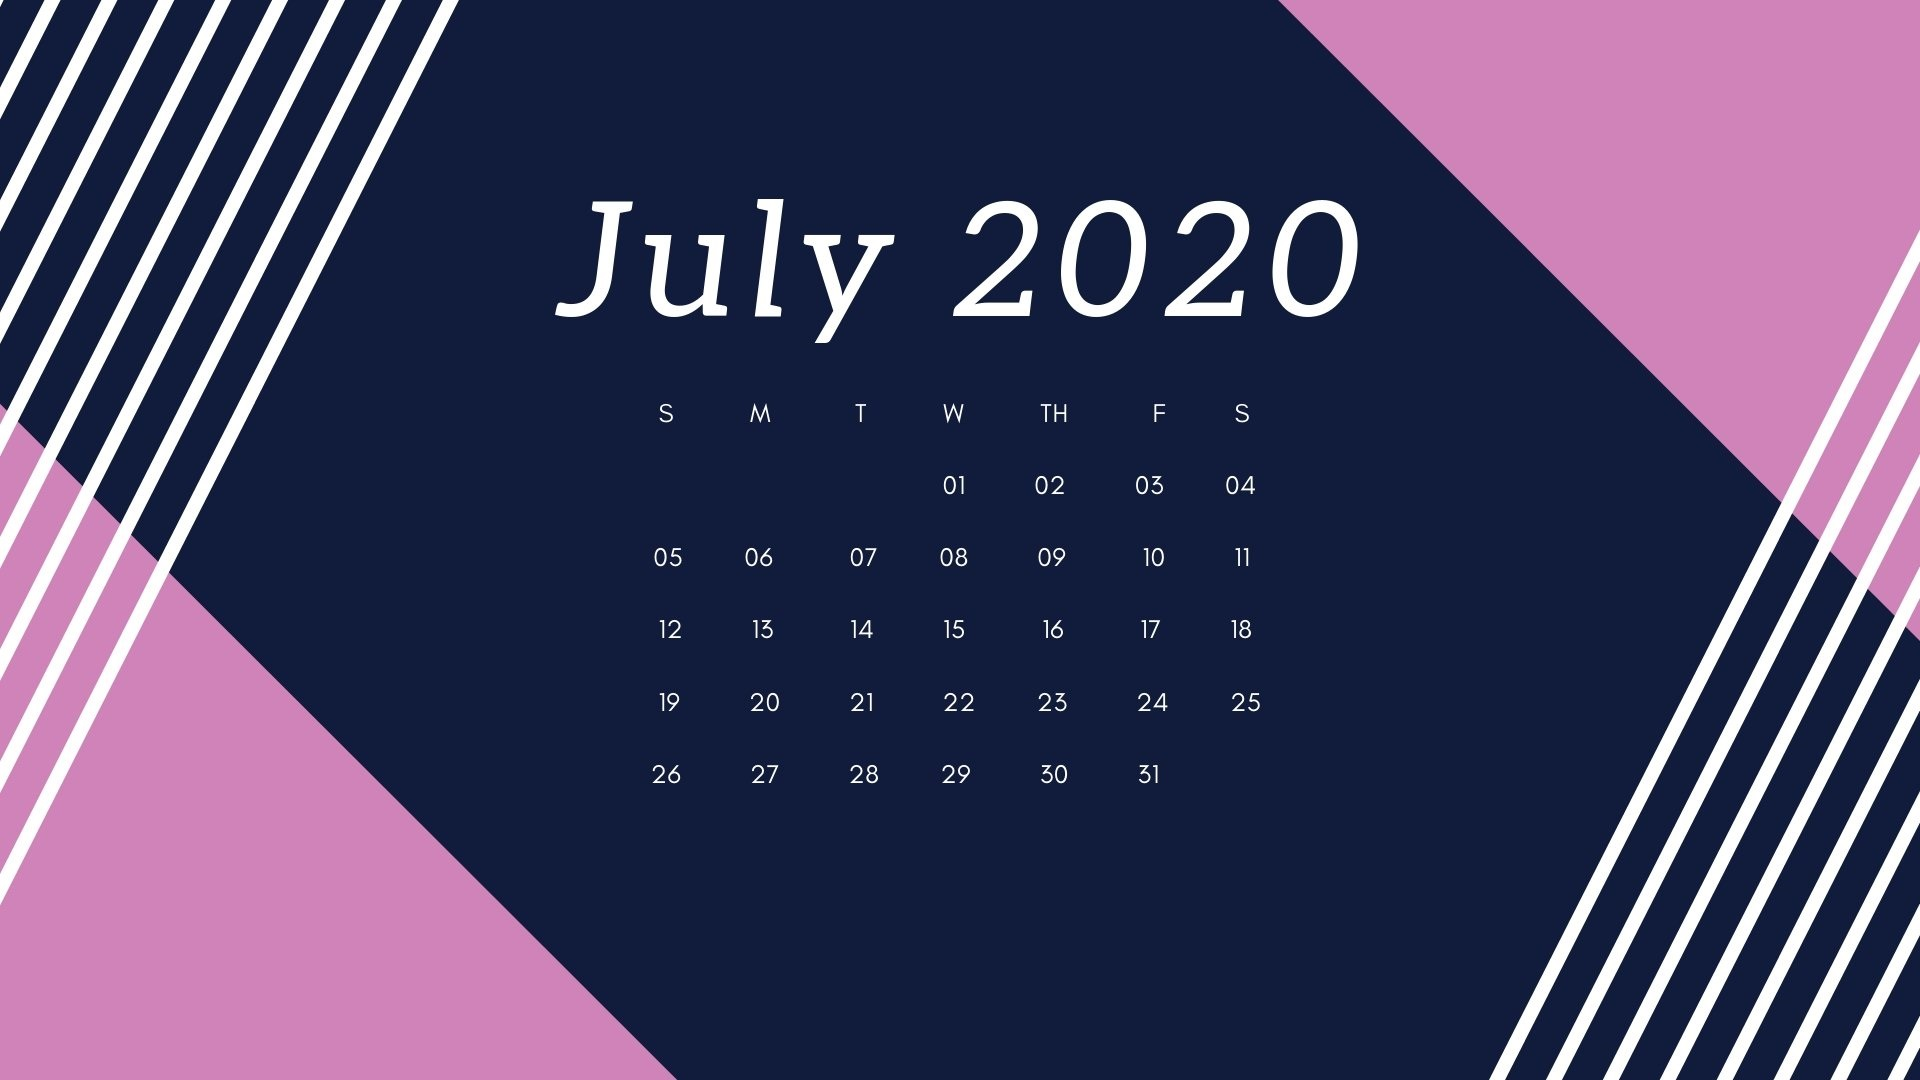 July 2020 Calendar Printable Monthly Template PDF Excel 1920x1080